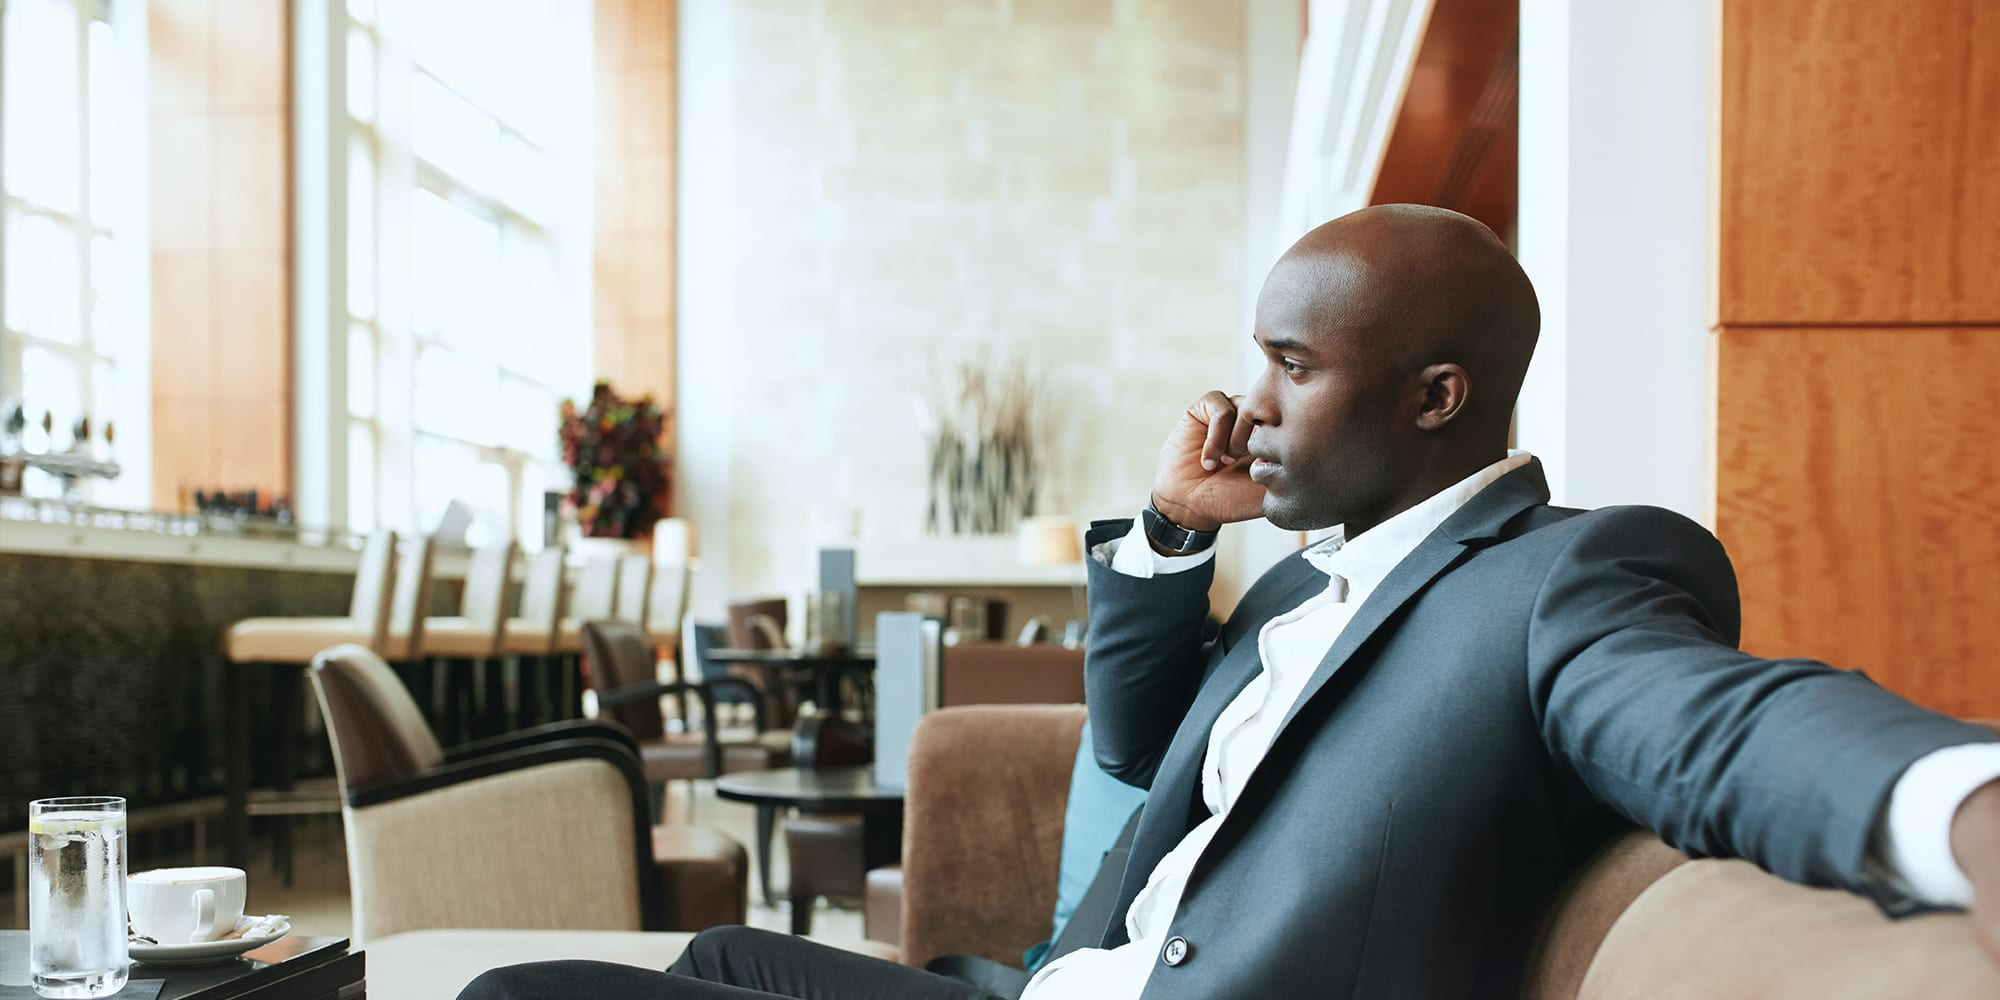 Young man in a suit on the phone at a restaurant